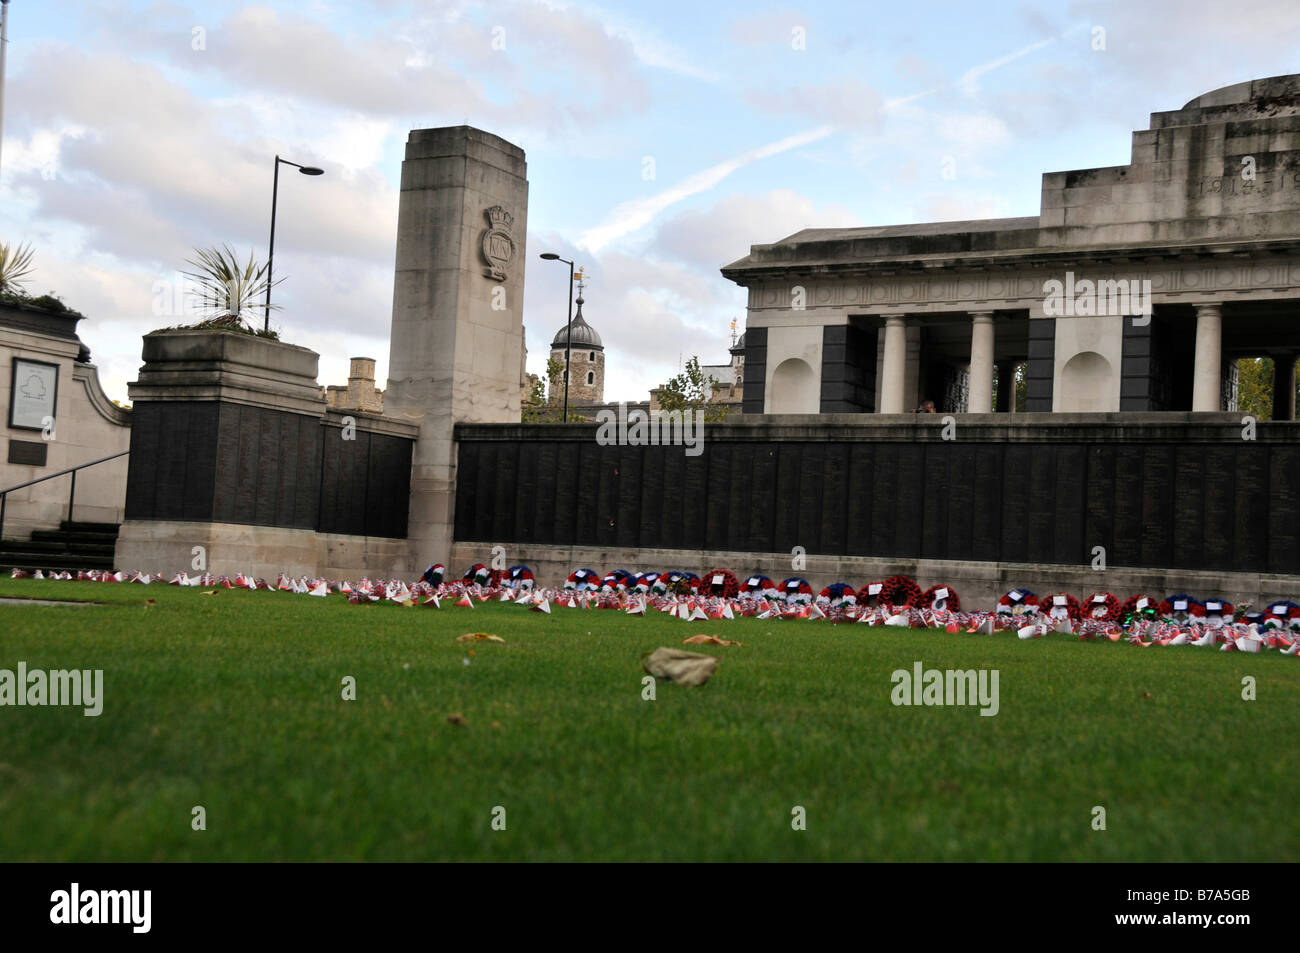 British flags and poppy wreaths at trinity square during a Remembrance Service - Stock Image